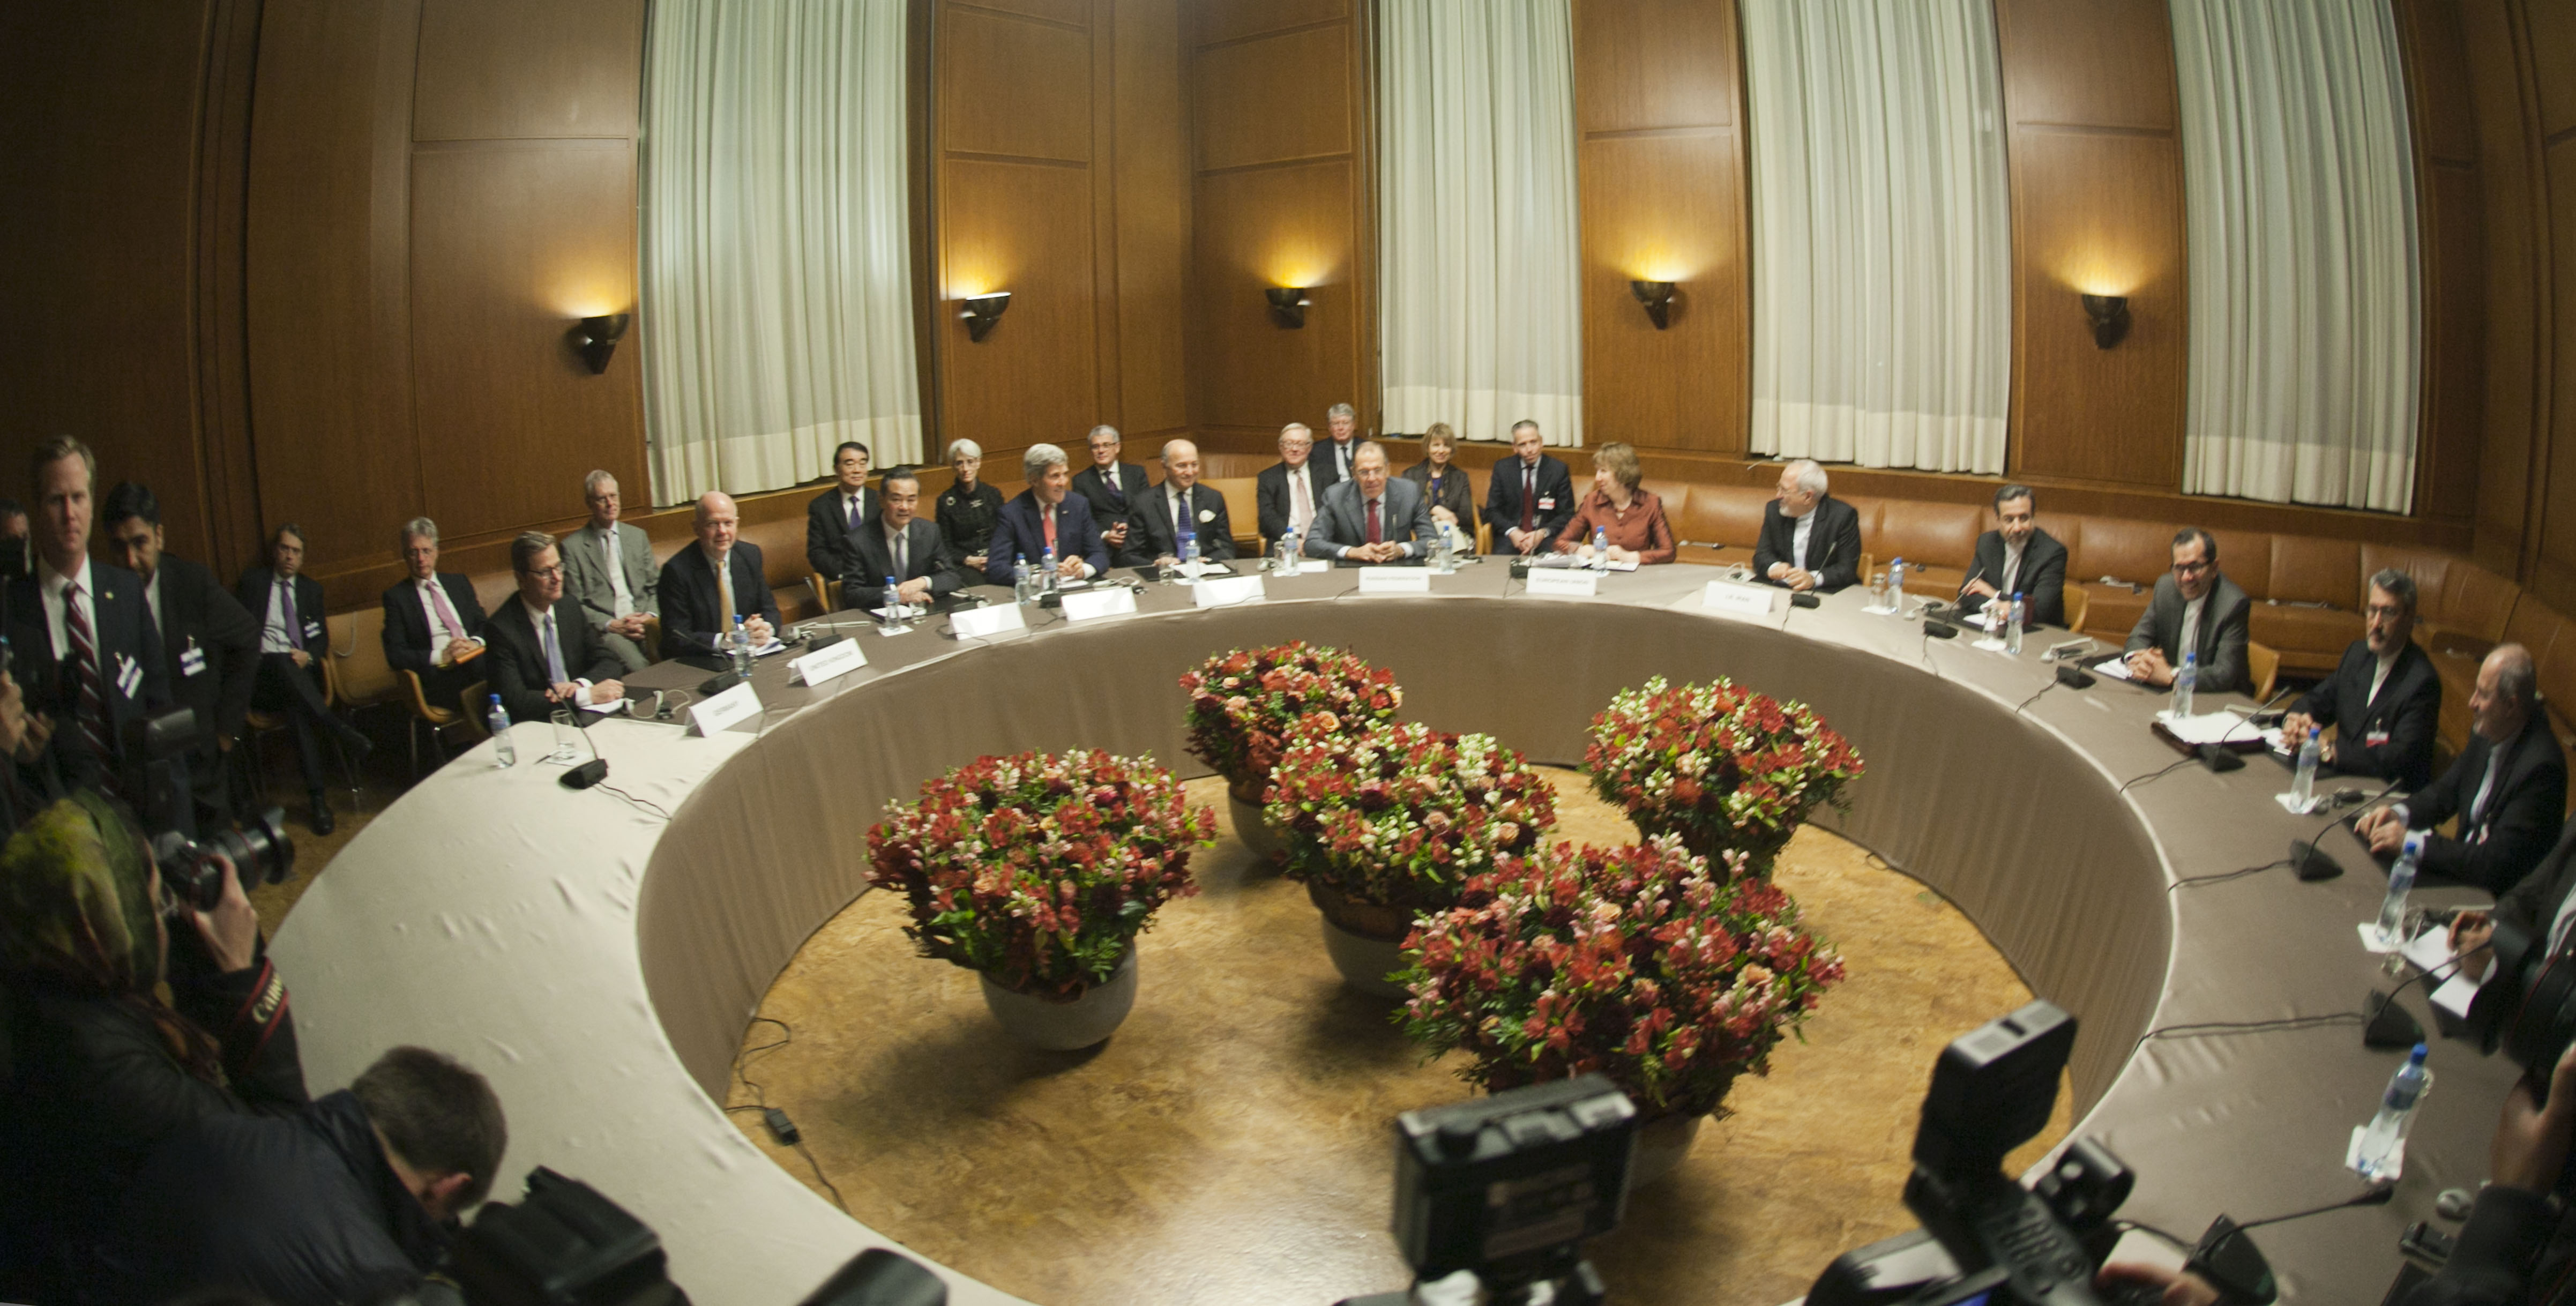 Ministers of Germany, U. K., China, U. S, France, Russia, the European Union and Iran in Geneva for the interim agreement on the Iranian nuclear program, November 2013. (Wikimedia)